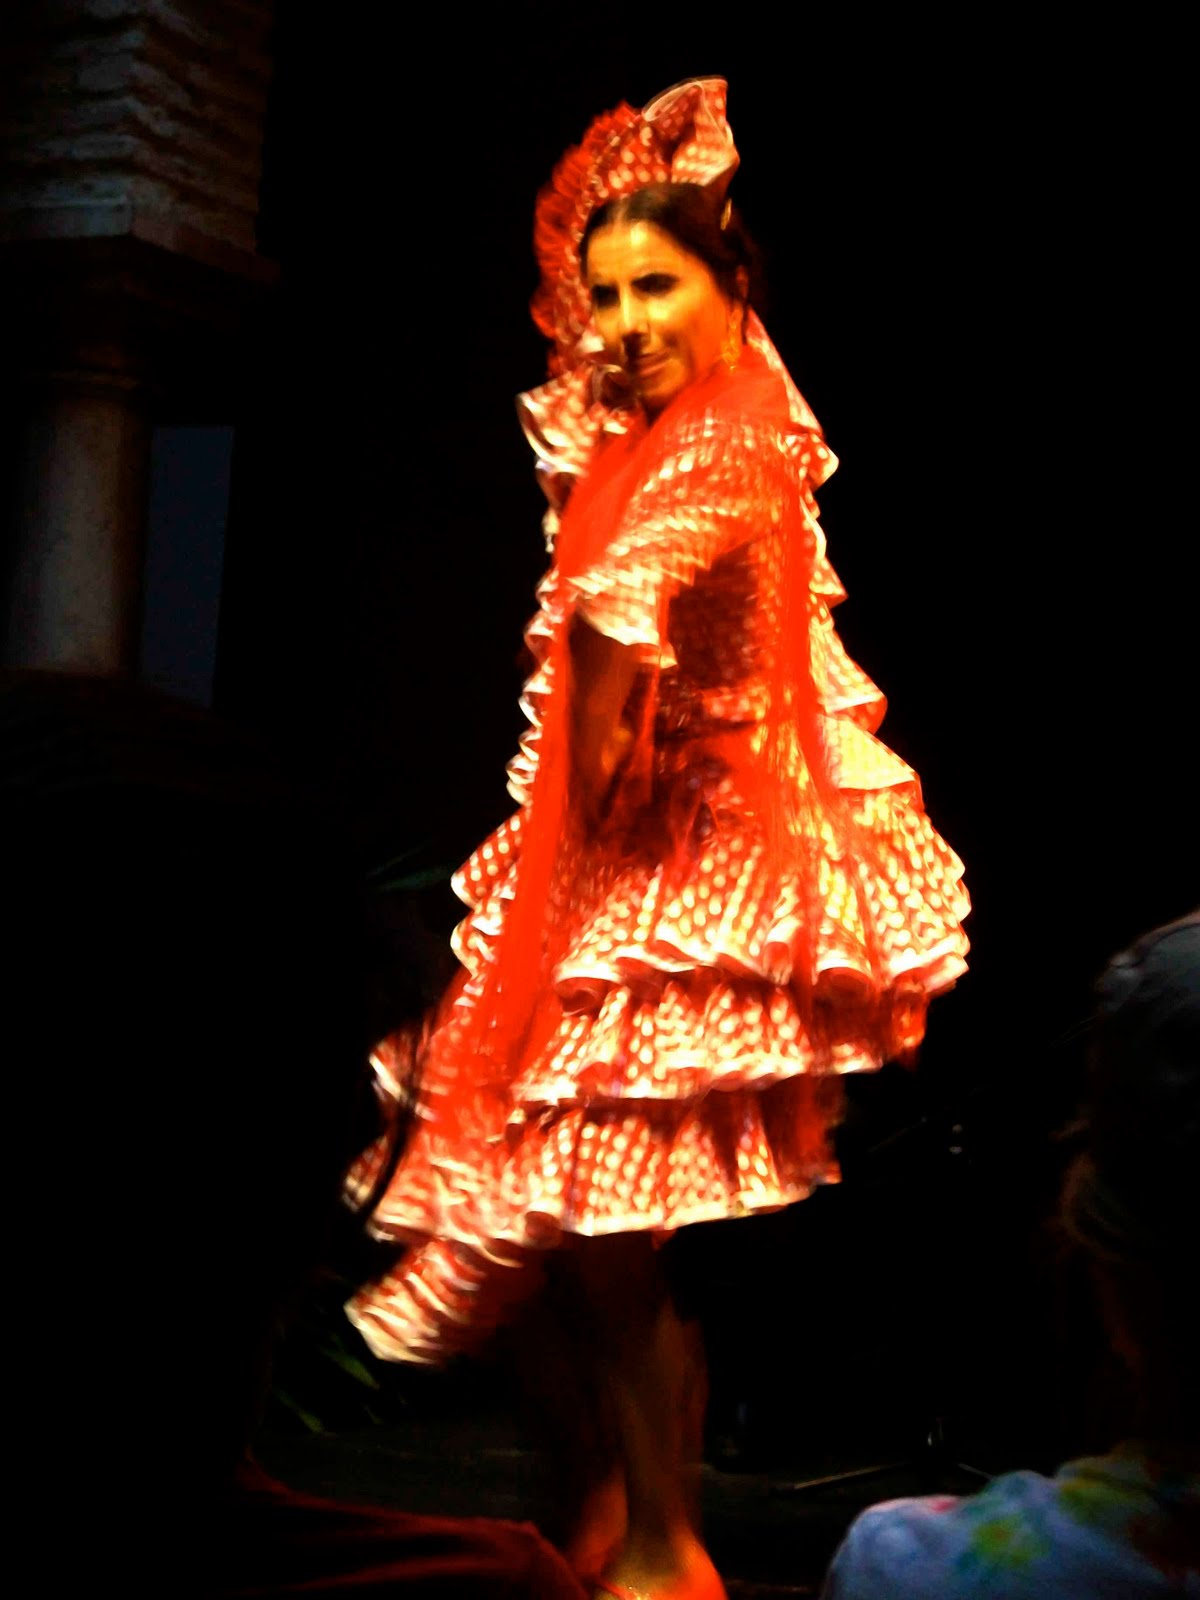 dani u0027s backpacking adventures 10 things i learned about flamenco